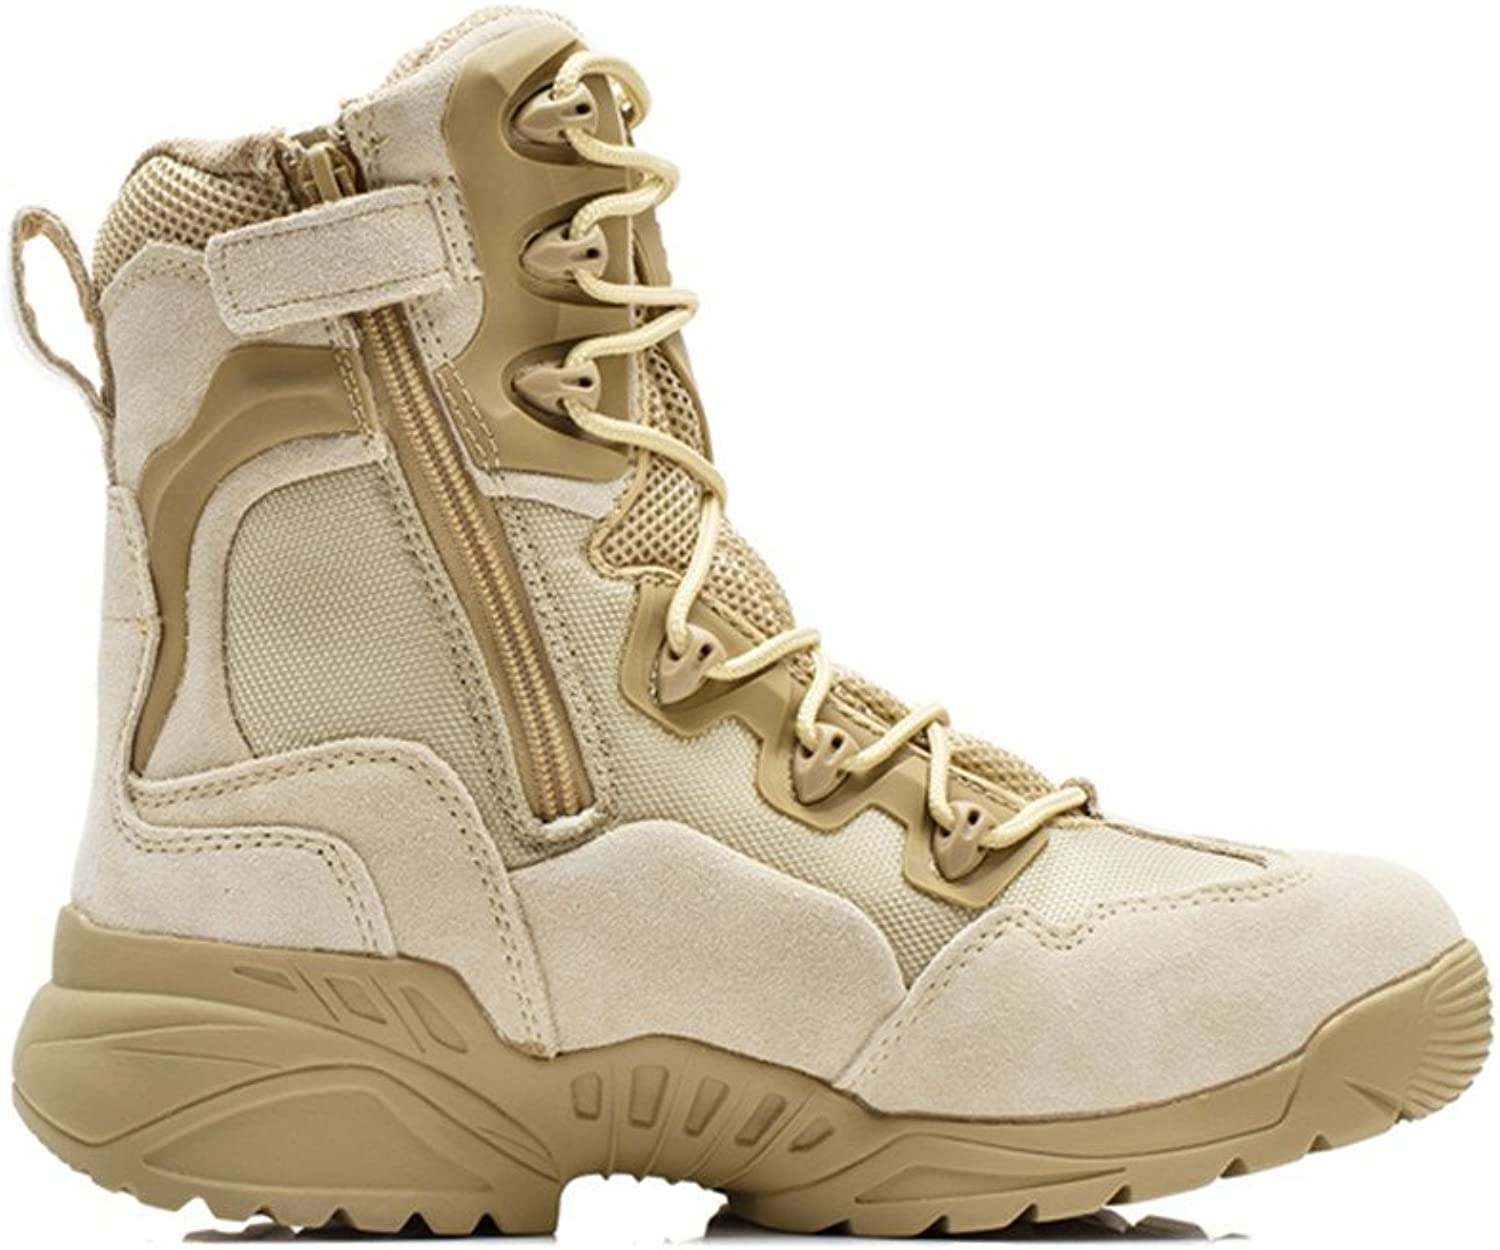 CHEJI-911 Men's 8 Inch Military and Tactical Boot with Side Zipper